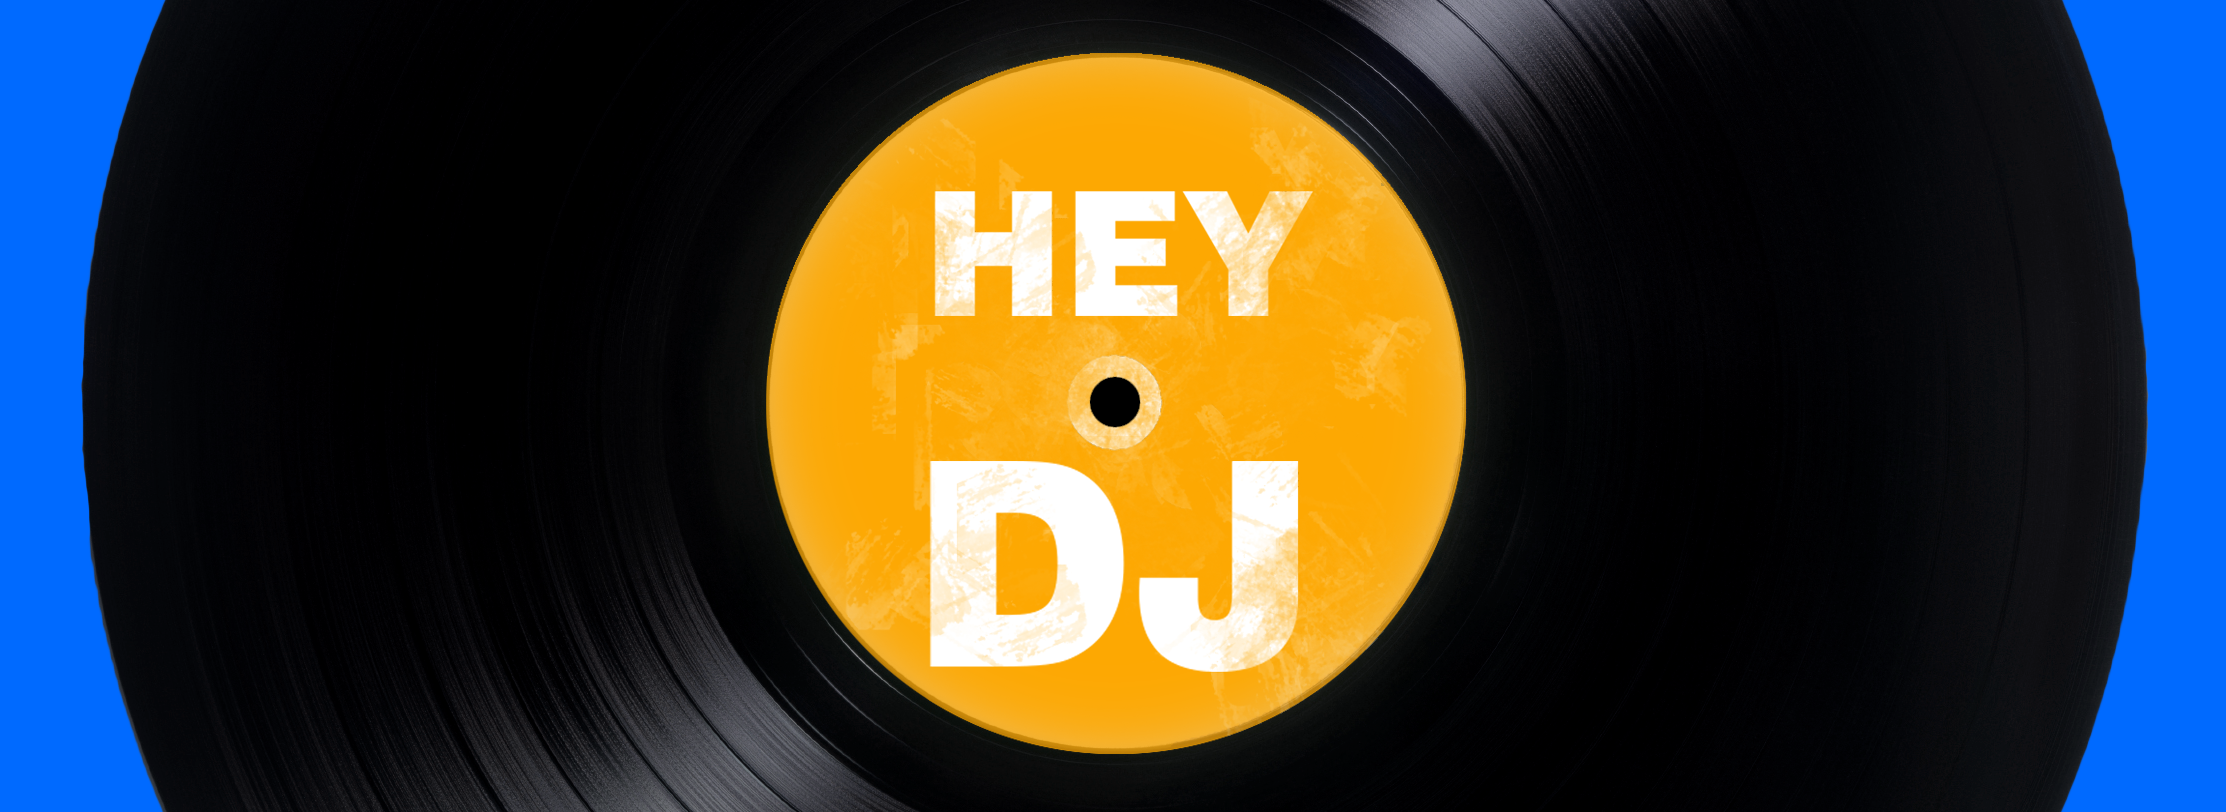 HeyDJ_Backer.png